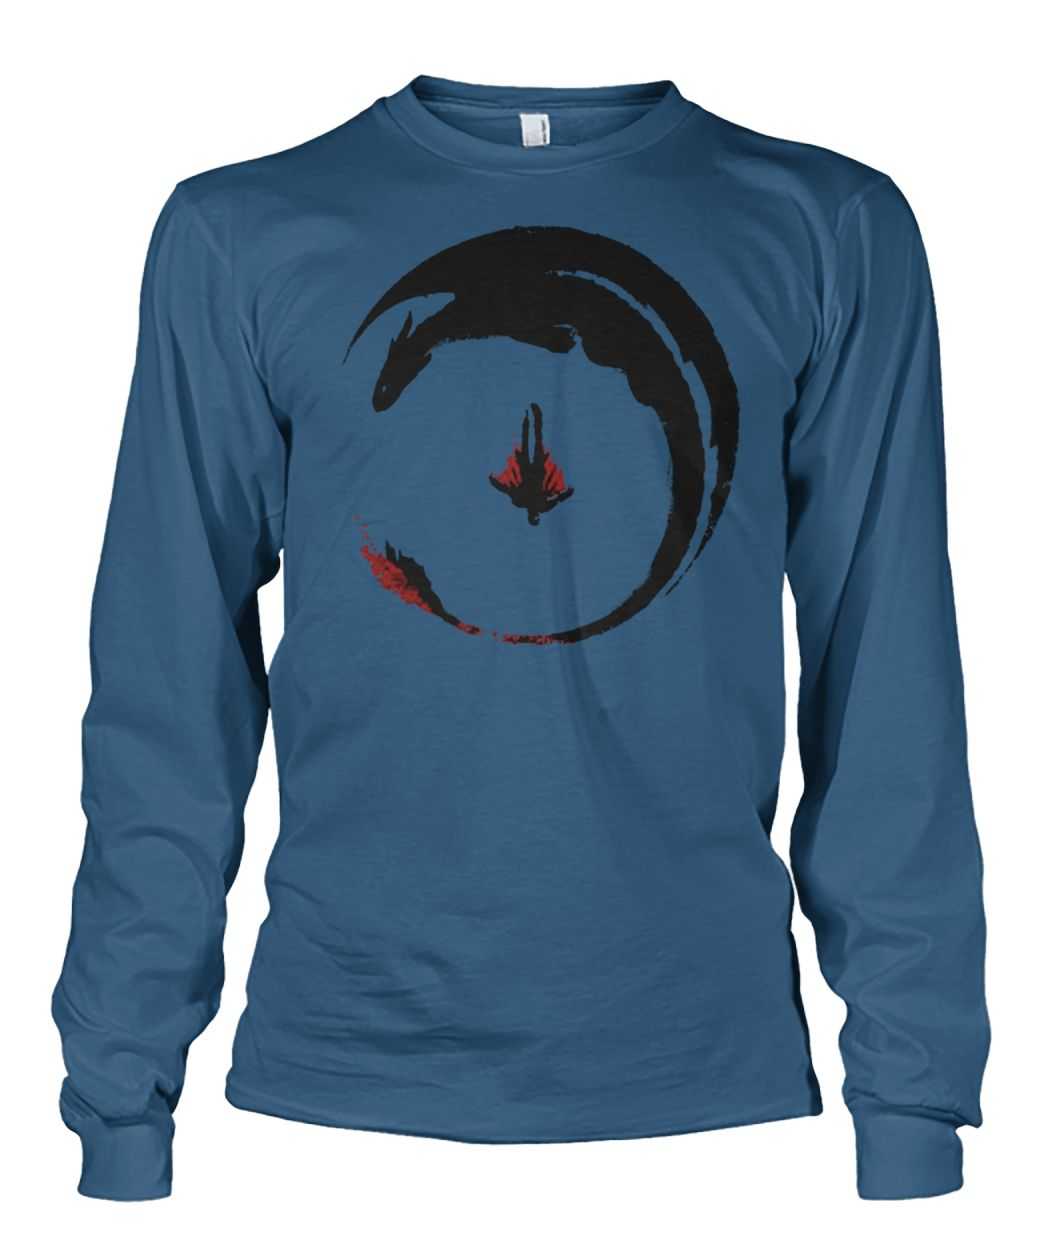 How to train your dragon 3 circling dragon unisex long sleeve